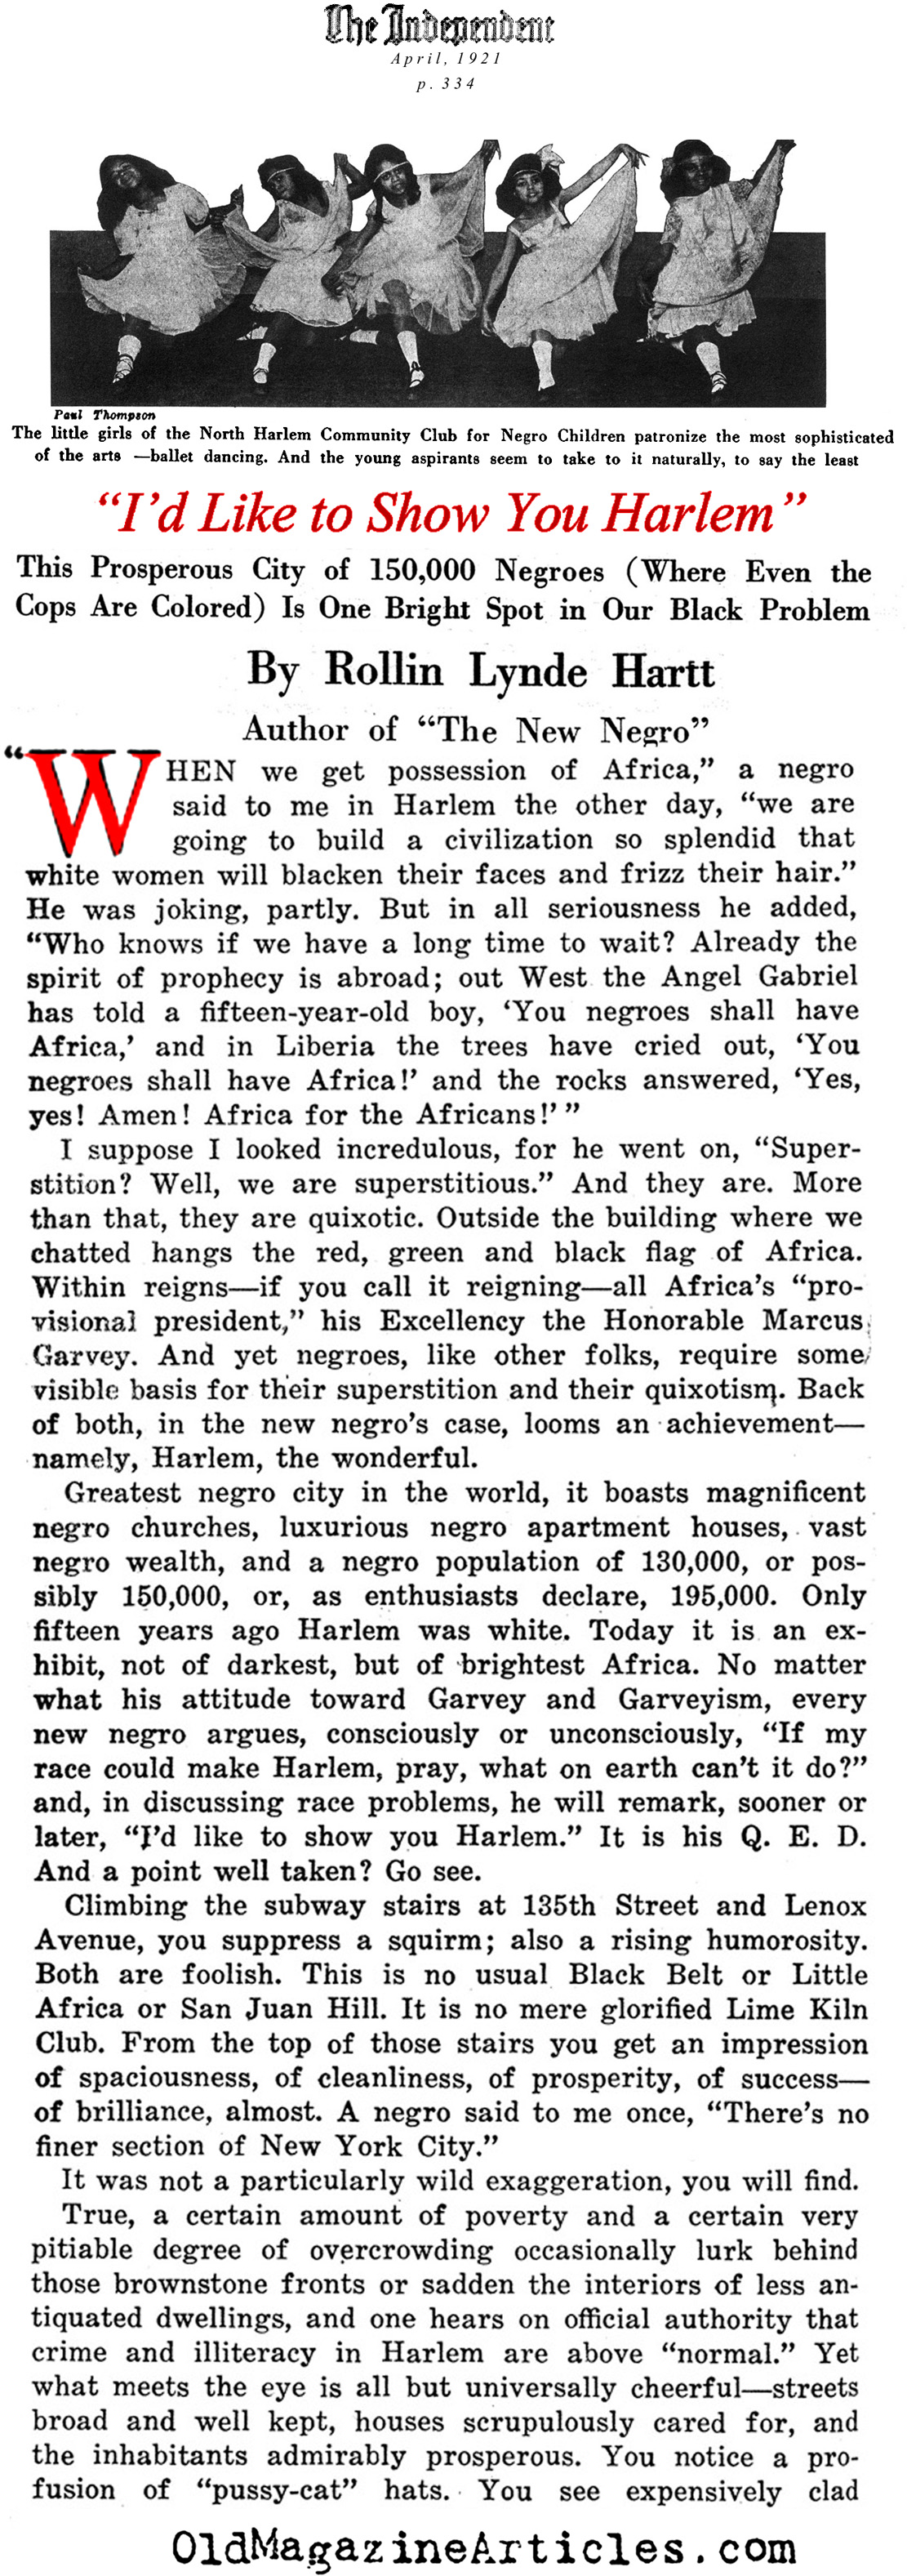 harlem renaissance newspaper article